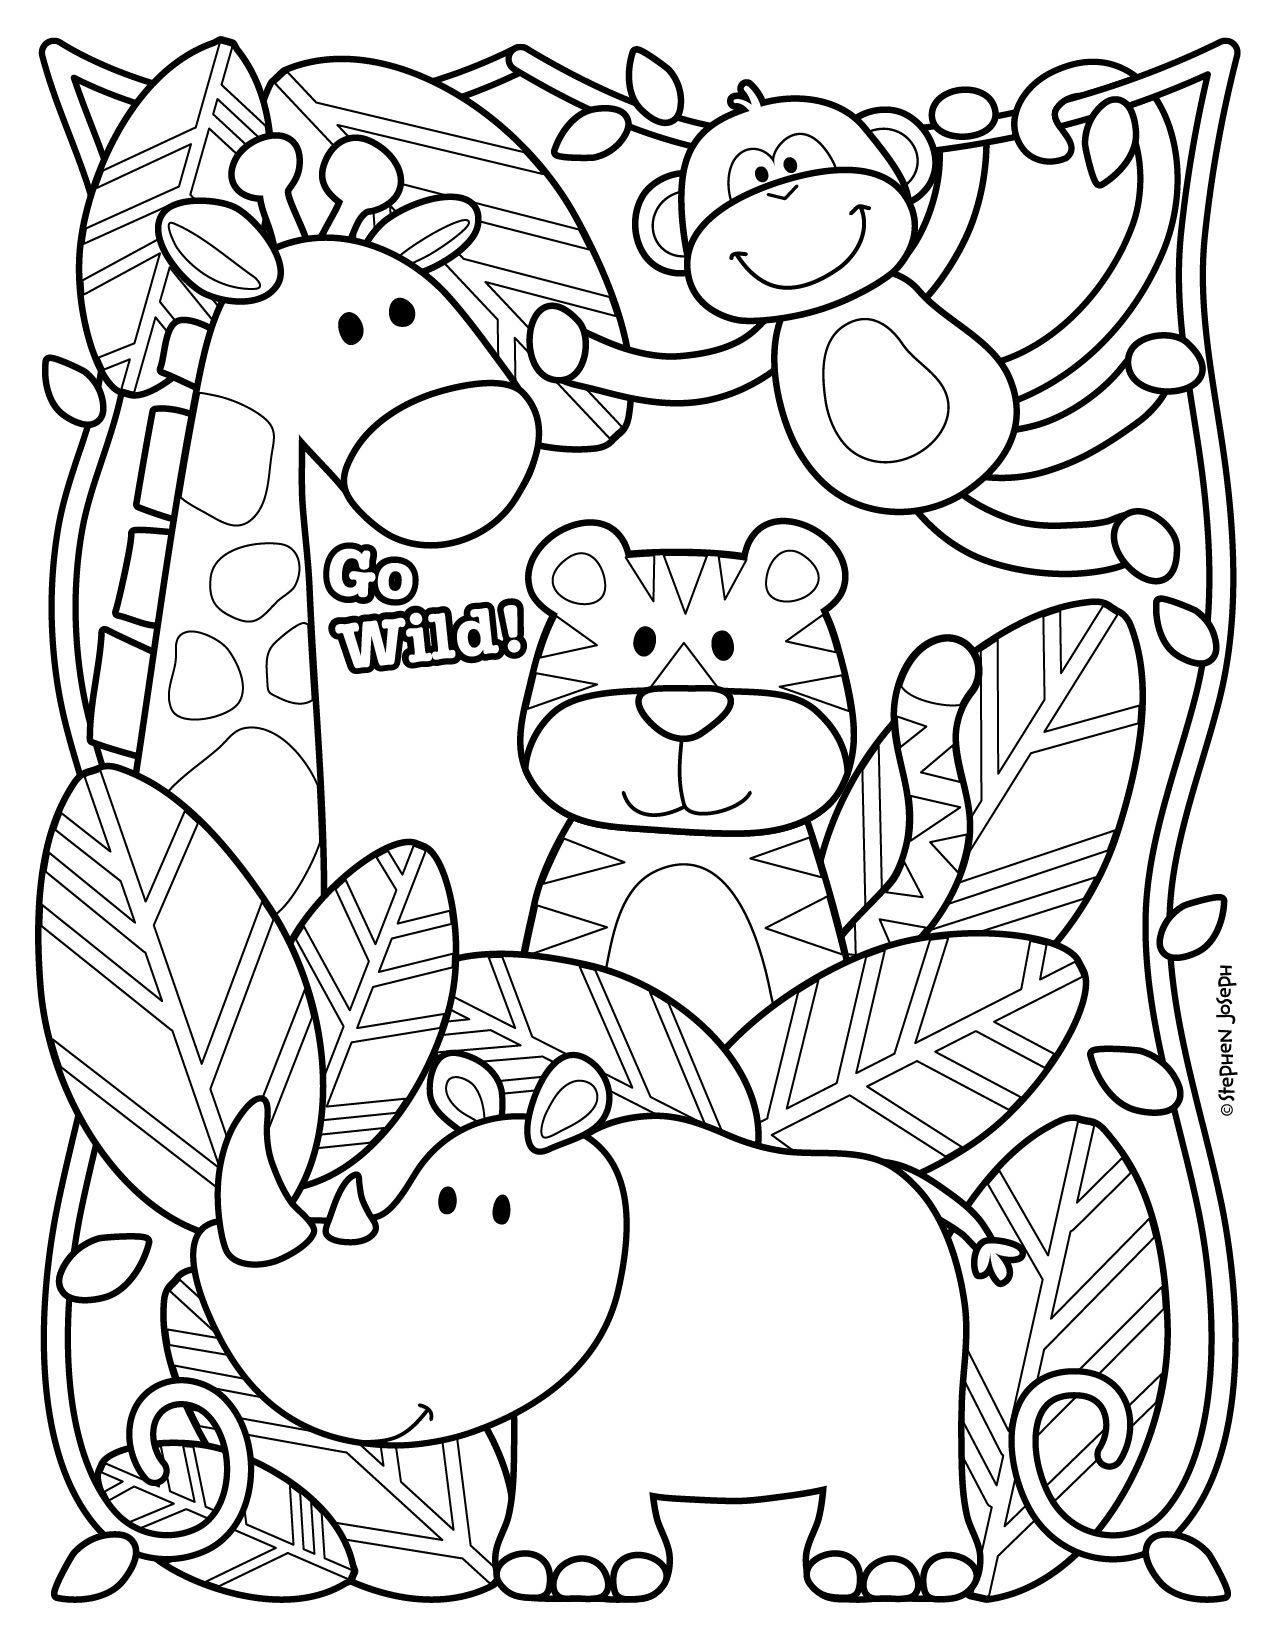 printable zoo animal coloring pages free printable zoo coloring pages for kids pages animal zoo coloring printable